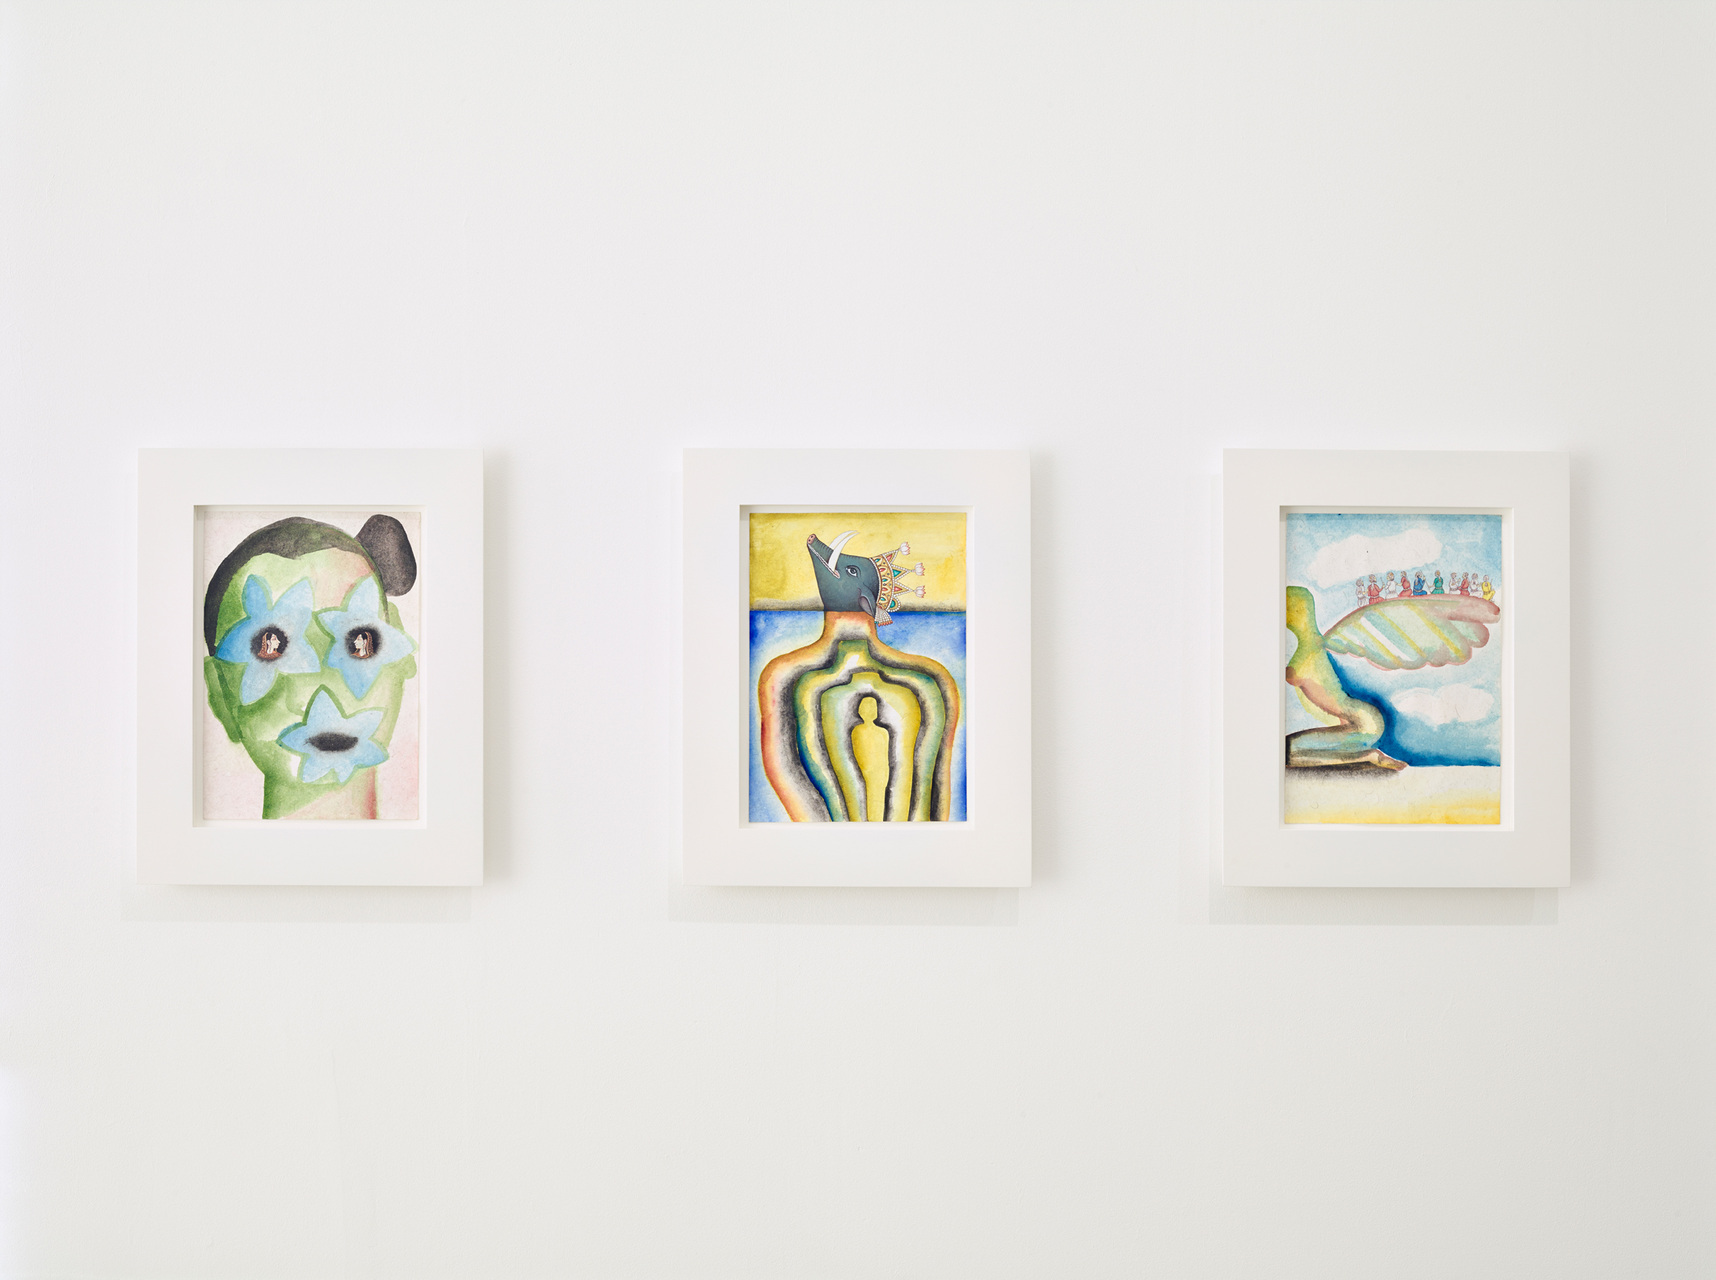 Francesco Clemente, Emblems of Transformation, Exhibition Installation Image 6, Image courtesy of BlainSouthern